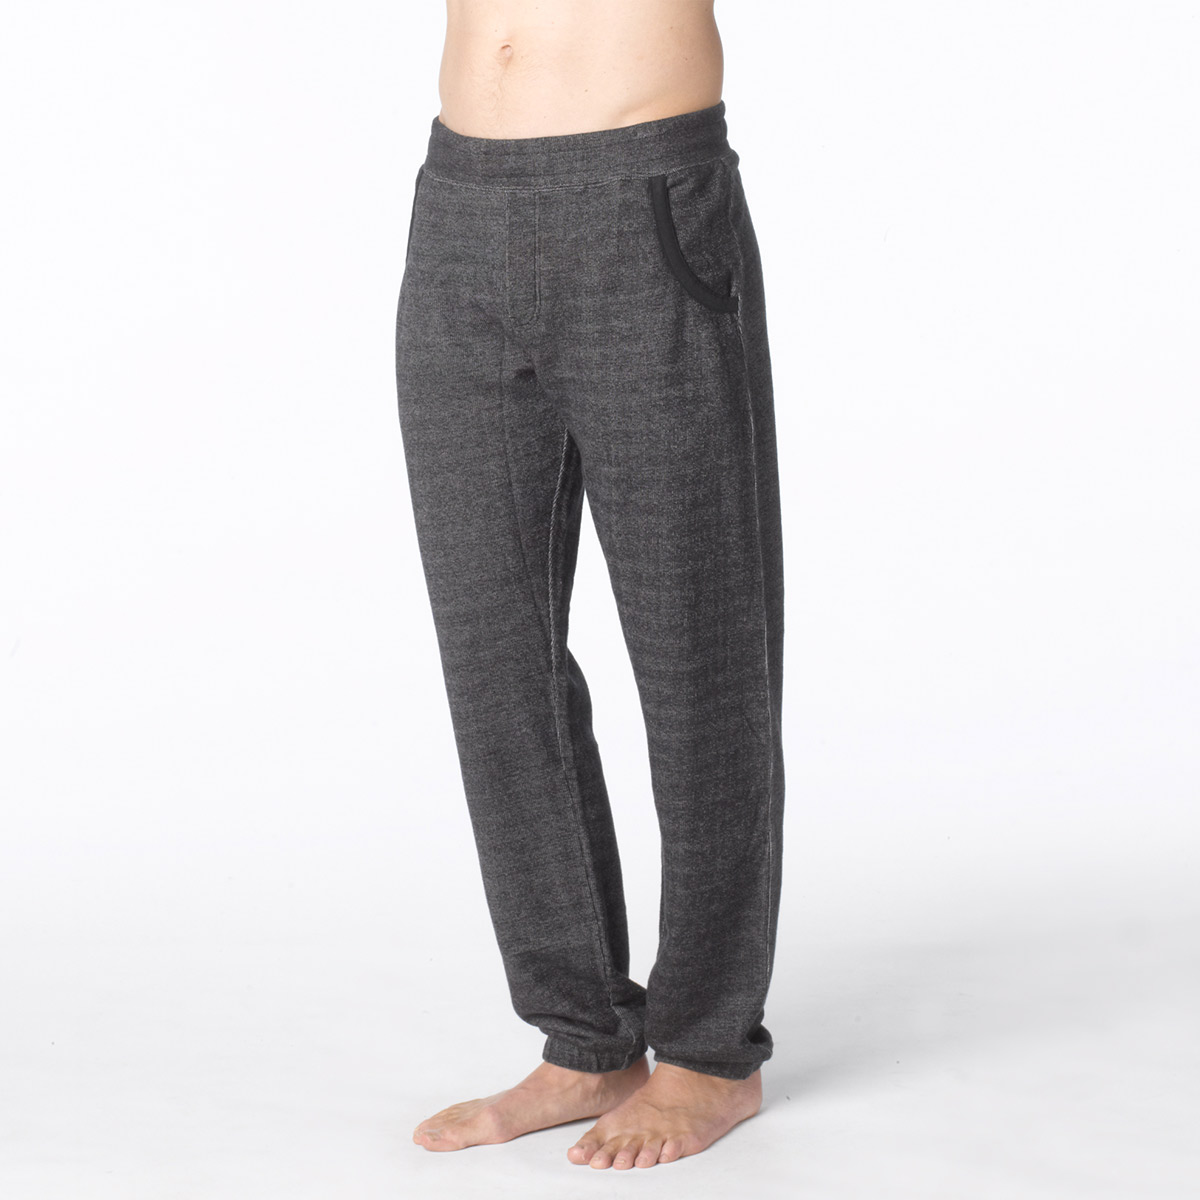 Prana Casper Yoga Pant Mens Apparel at Vickerey